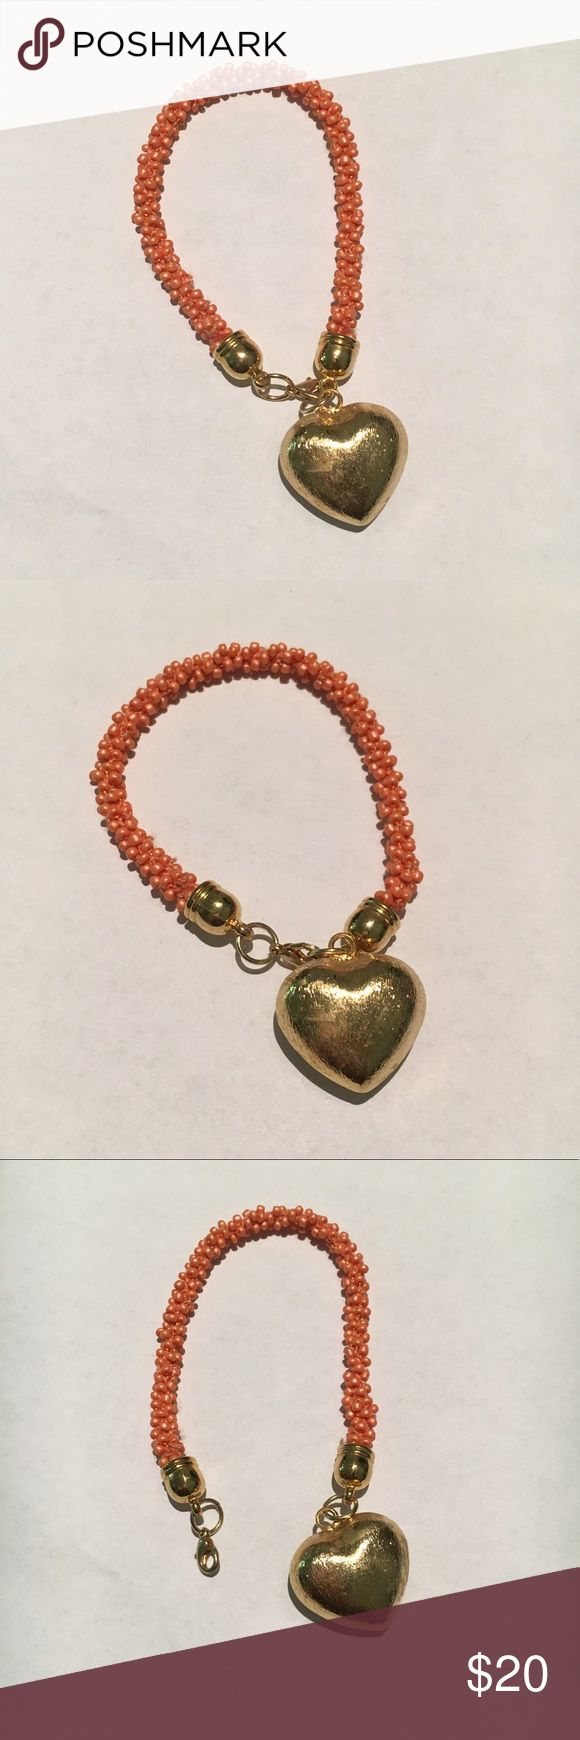 Colombian Handmade heart bracelet Handmade in Colombian. Beautiful bracelet in Coral color. Lobster claw clasp closure. New, never worn without tags. Jewelry Bracelets